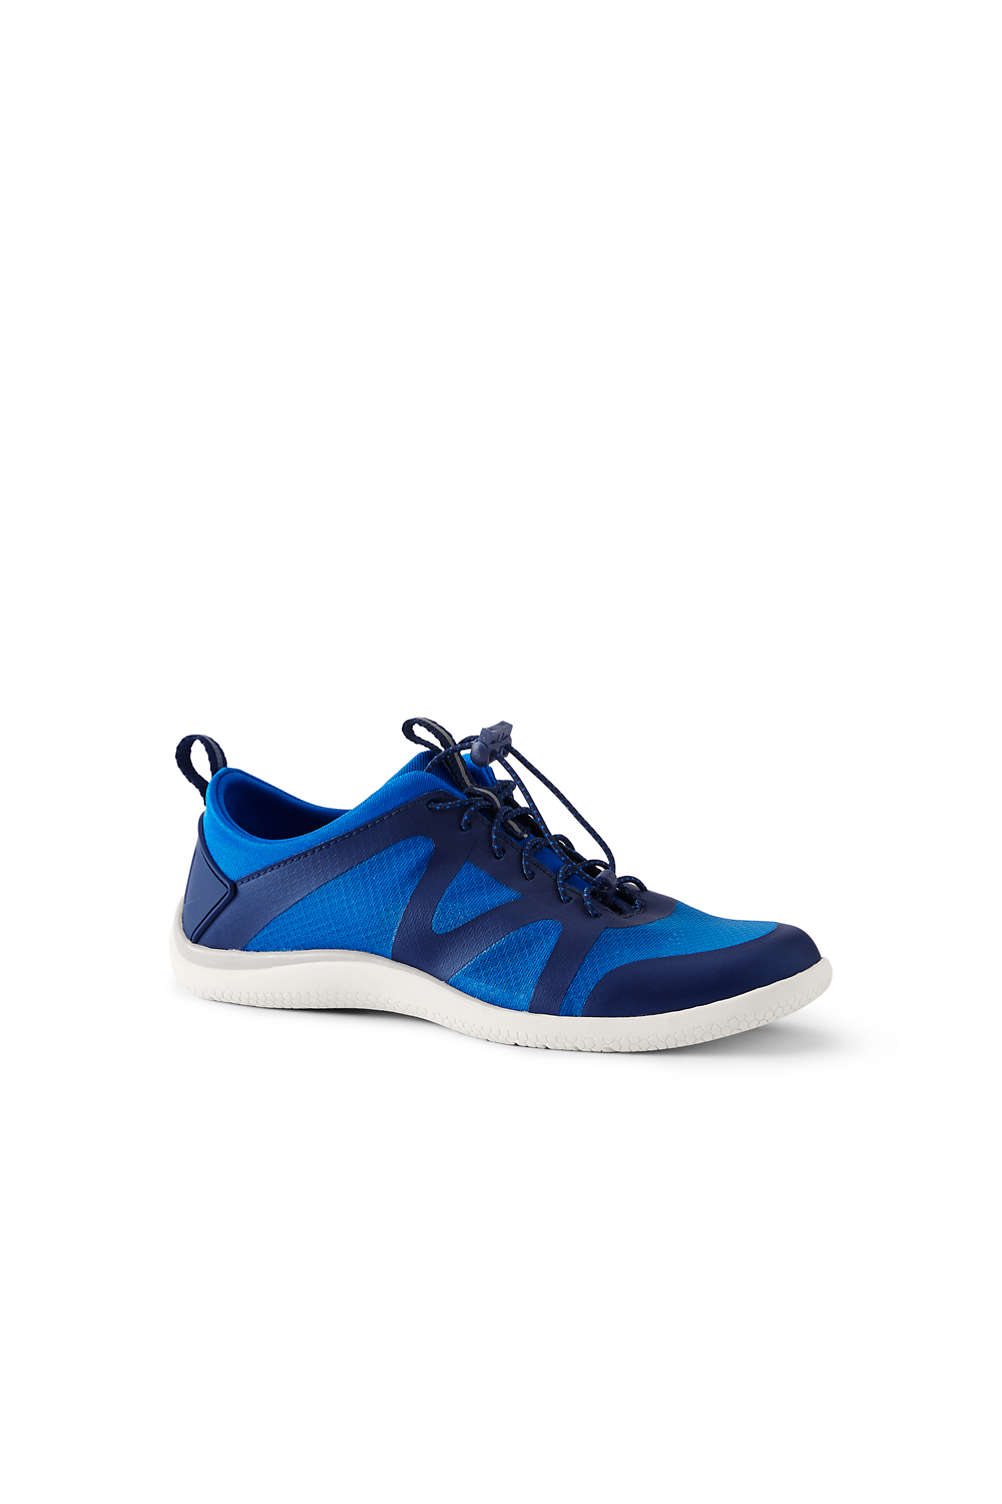 7e7ebf5fee91 Women's Water Shoes from Lands' End